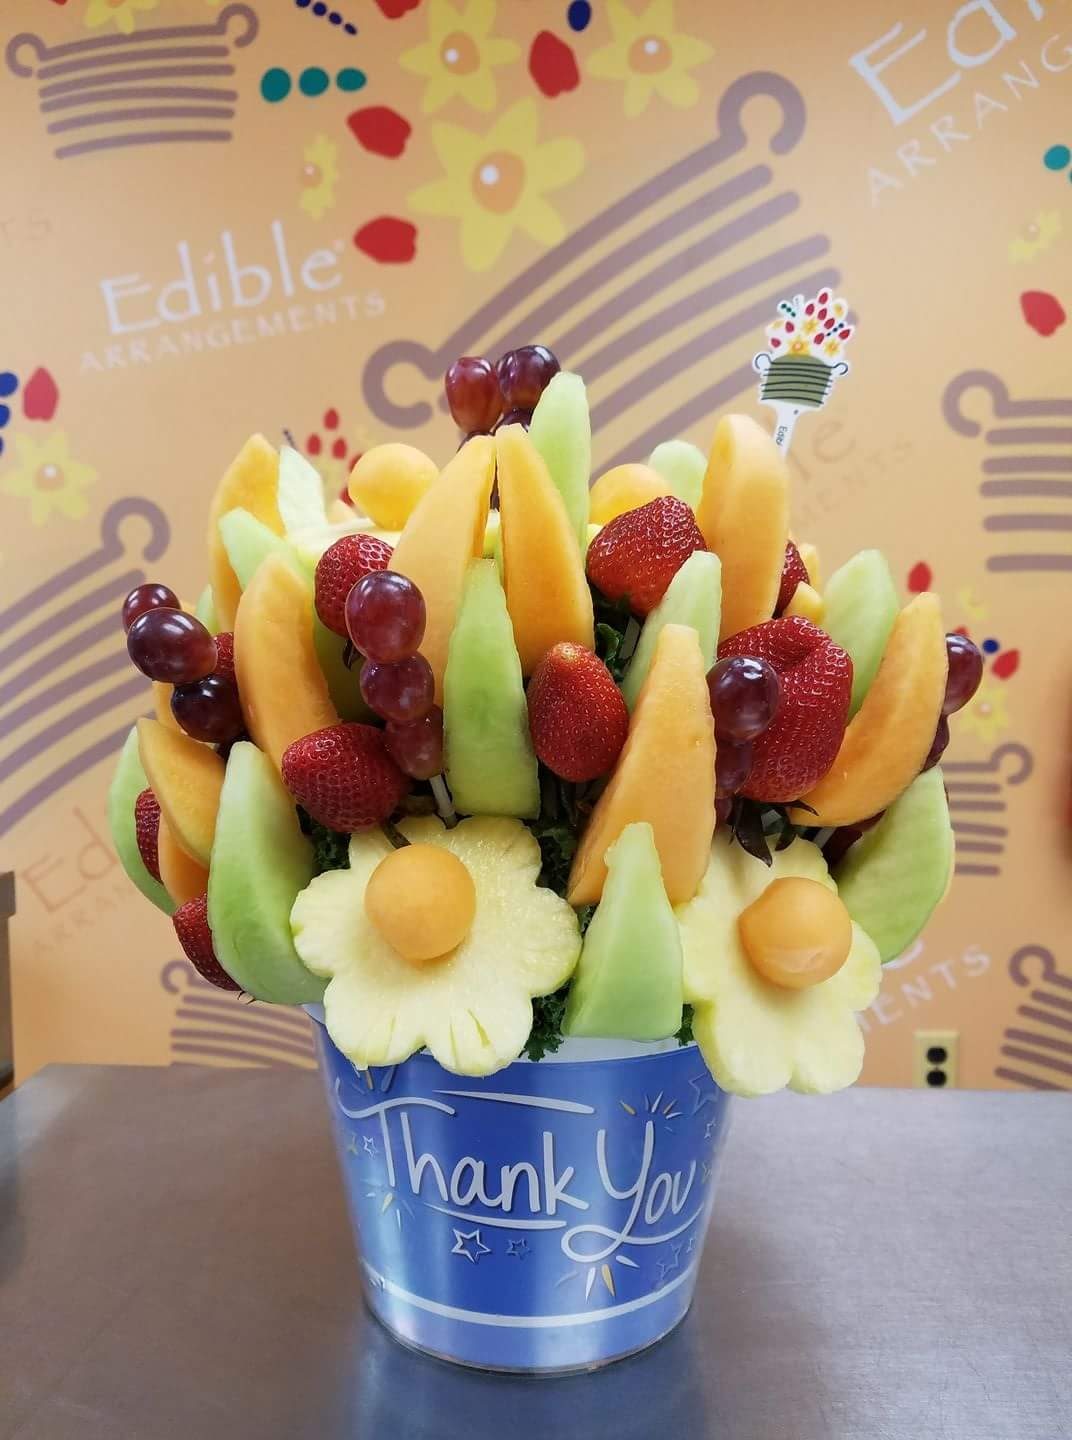 Iconic Brand and Strong Team in Place – Edible Arrangement Resale